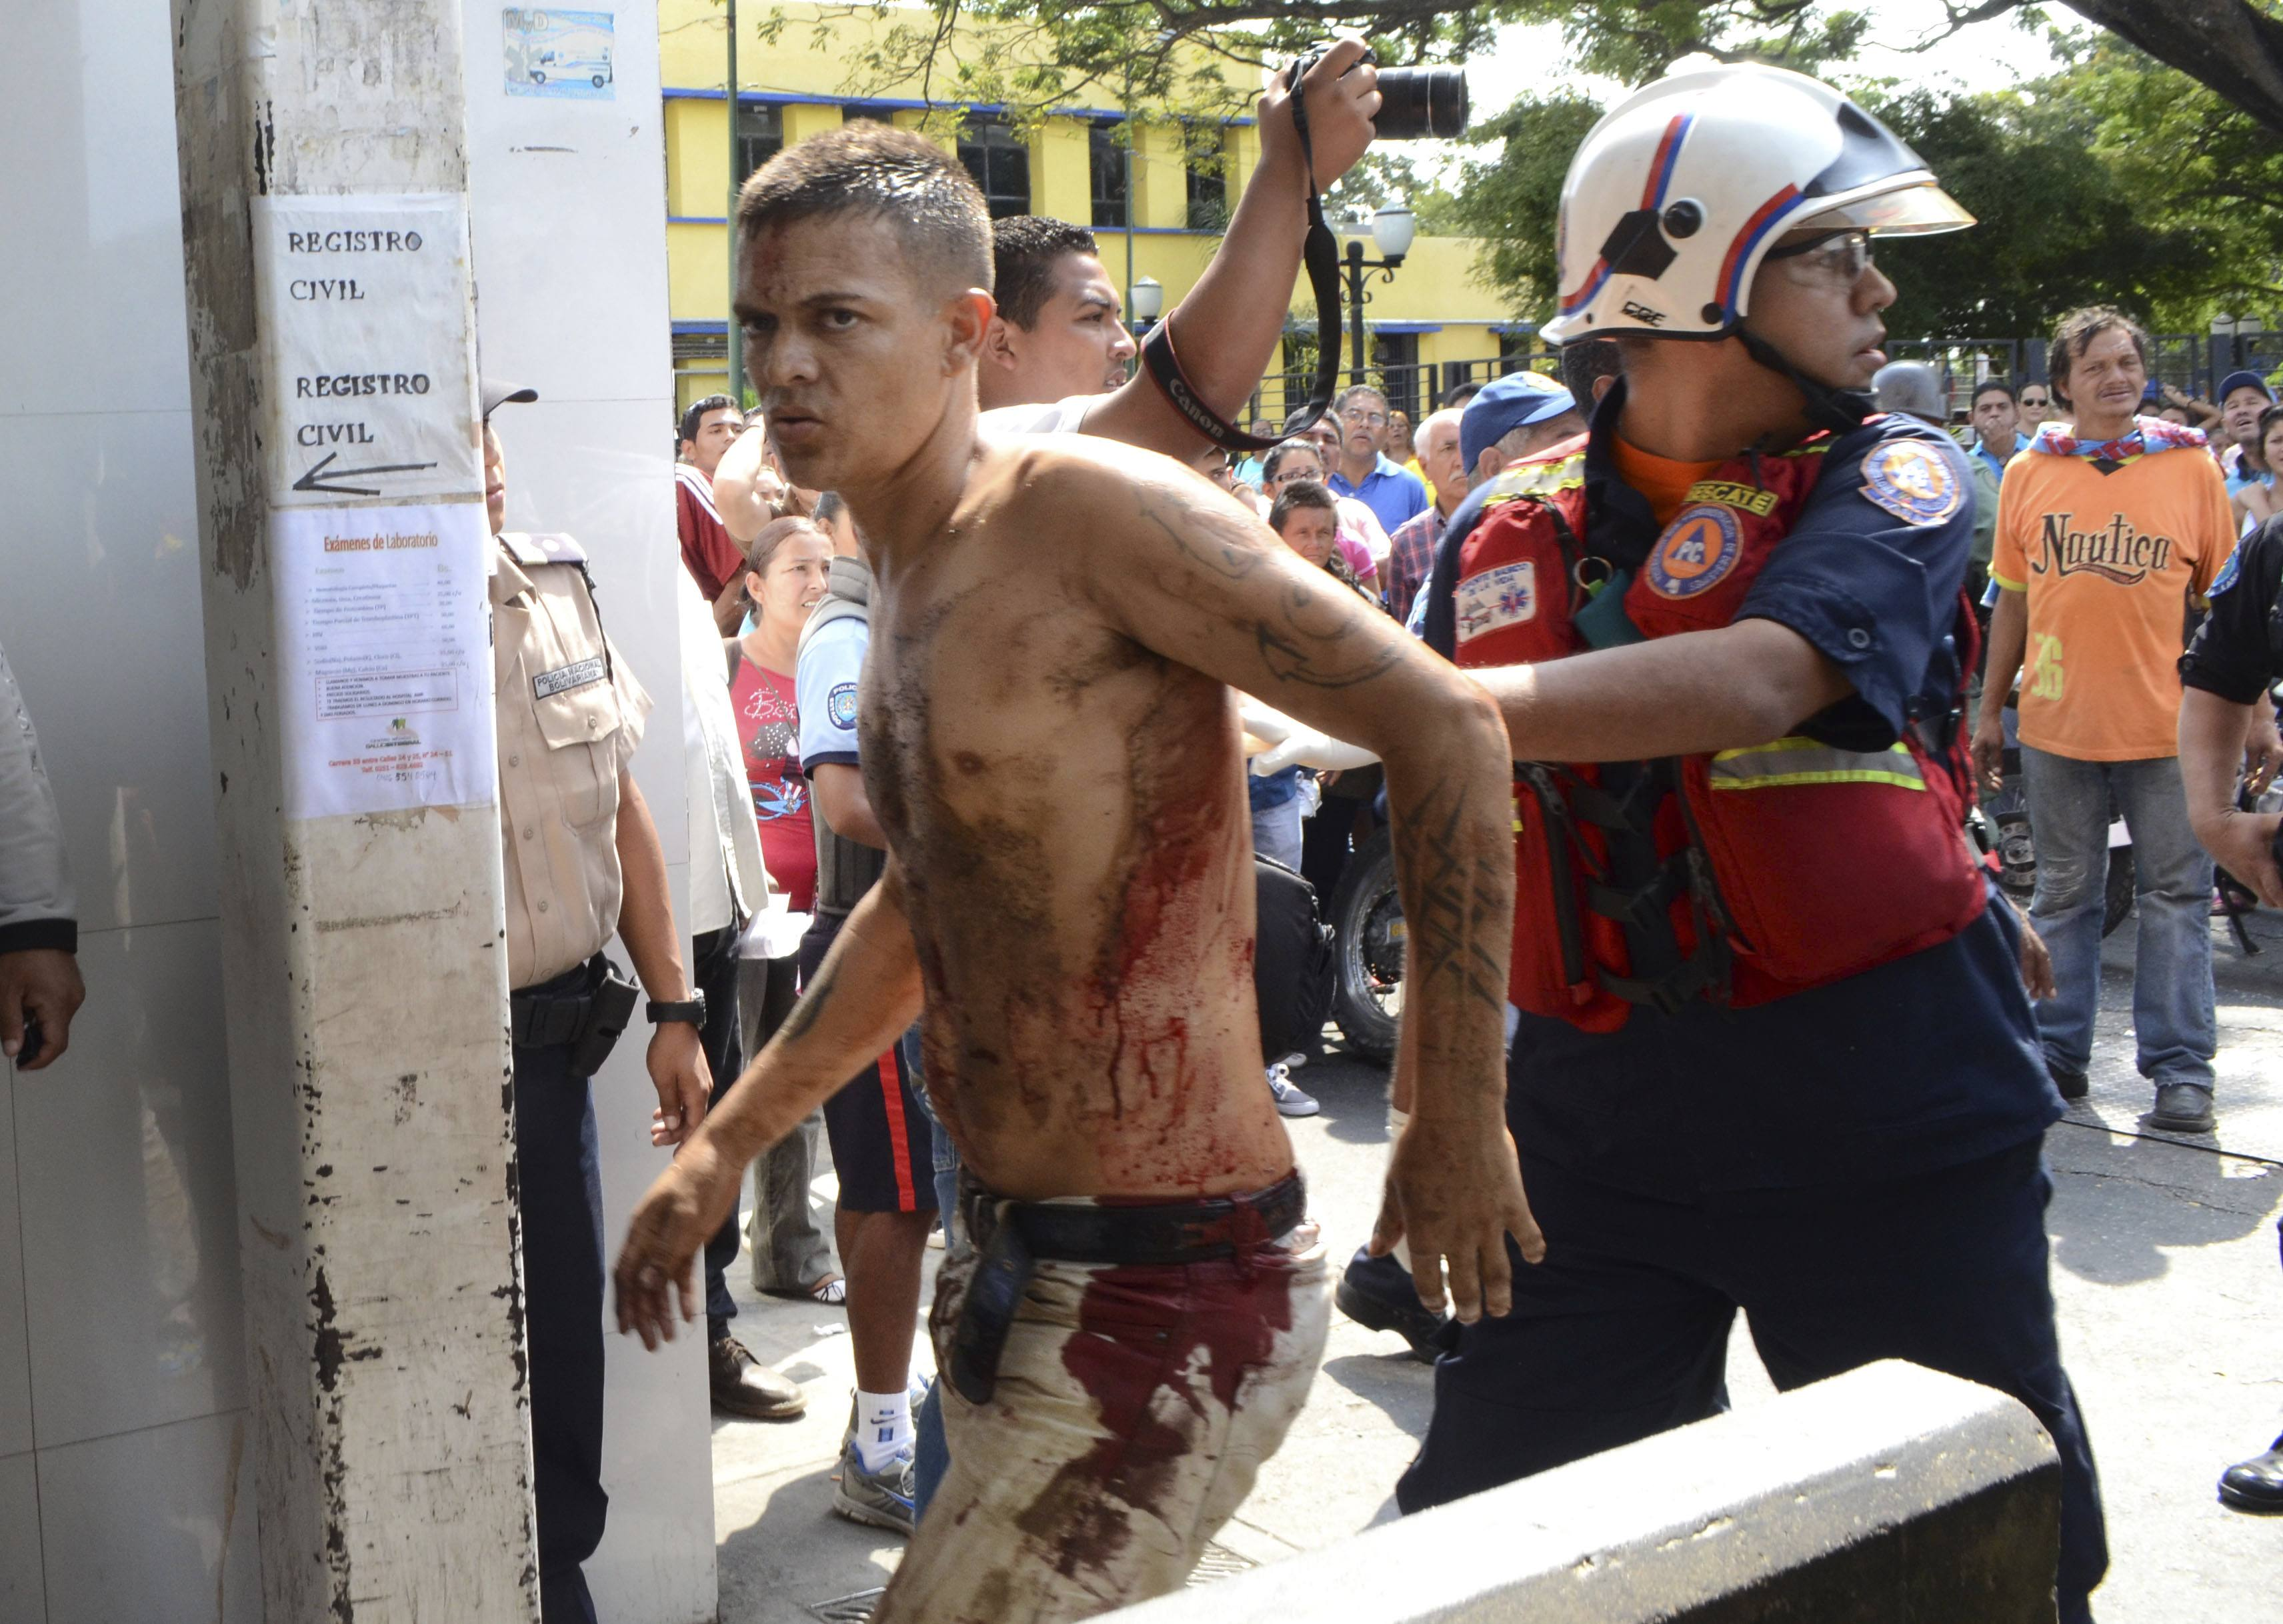 Dozens Killed In Prison Riot Mourning Families Human Rights Groups Criticize Venezuelan Inaction